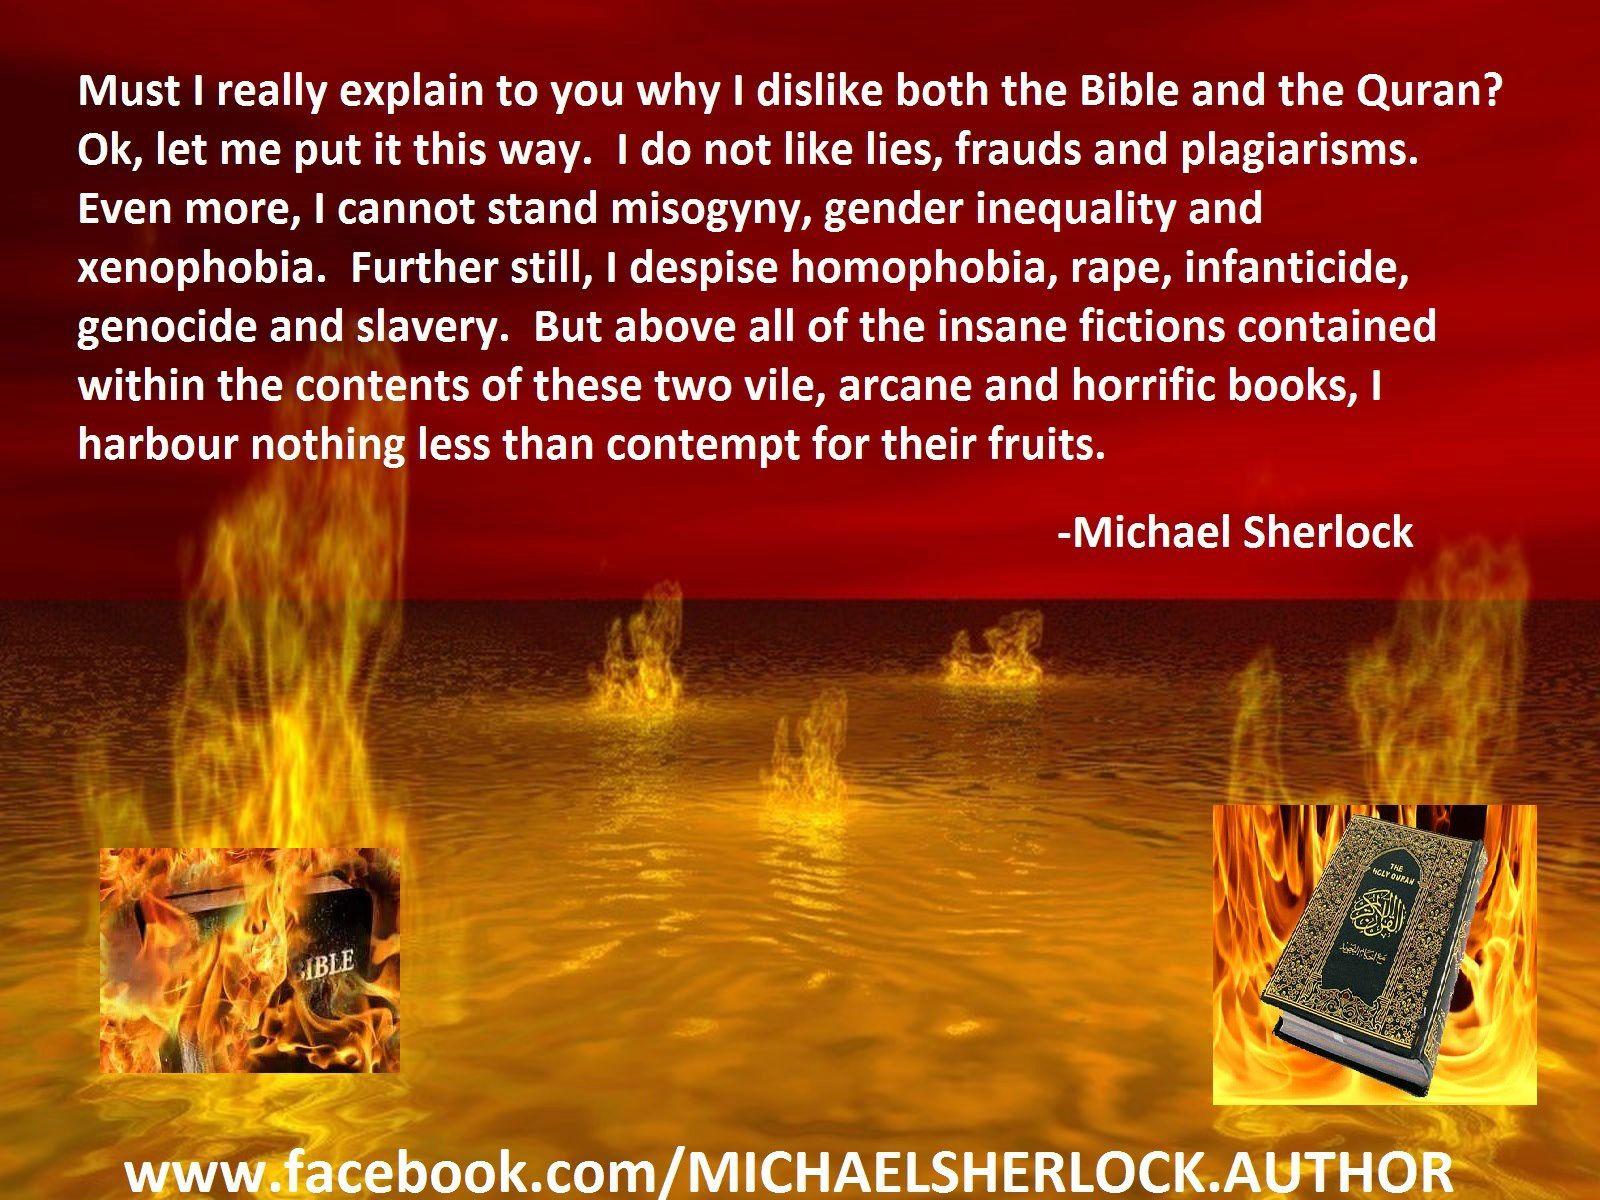 Why I dislike the Bible and Qur'an.